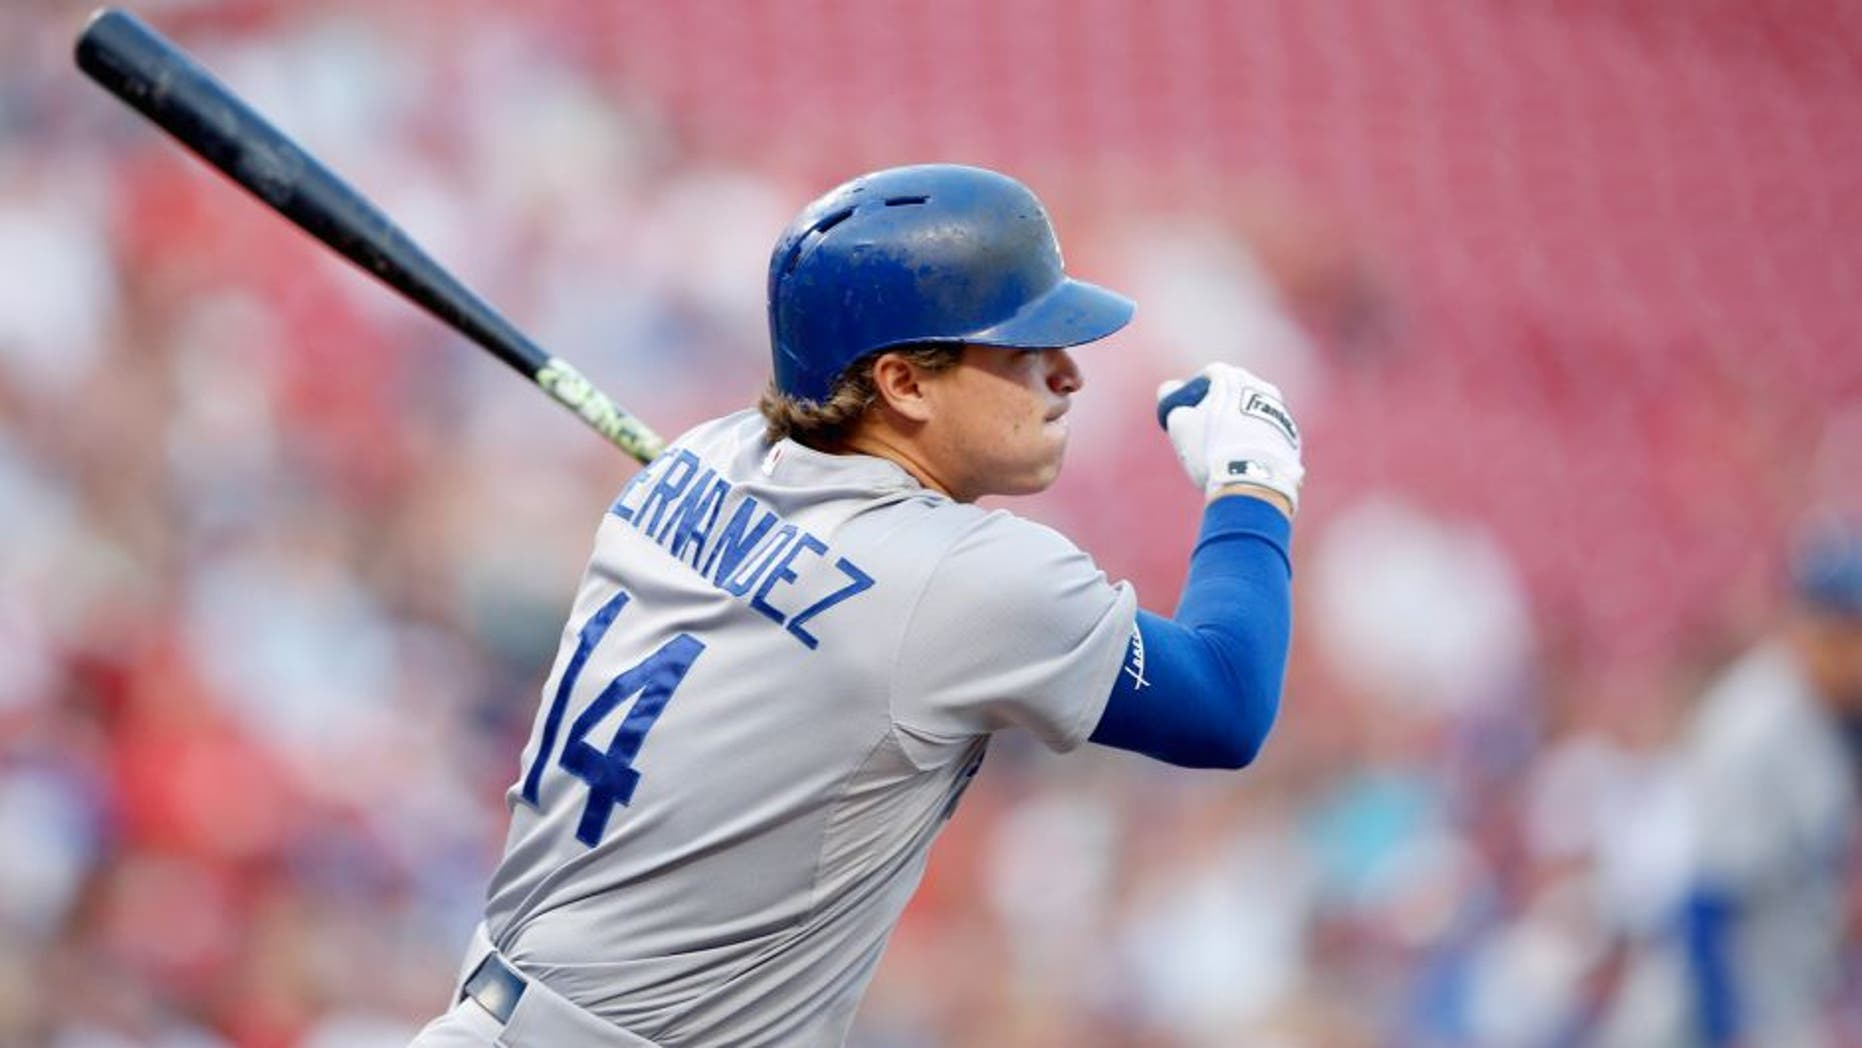 CINCINNATI, OH - AUGUST 26: Enrique Hernandez #14 of the Los Angeles Dodgers singles to right to drive in a run in the second inning against the Cincinnati Reds at Great American Ball Park on August 26, 2015 in Cincinnati, Ohio. (Photo by Joe Robbins/Getty Images)